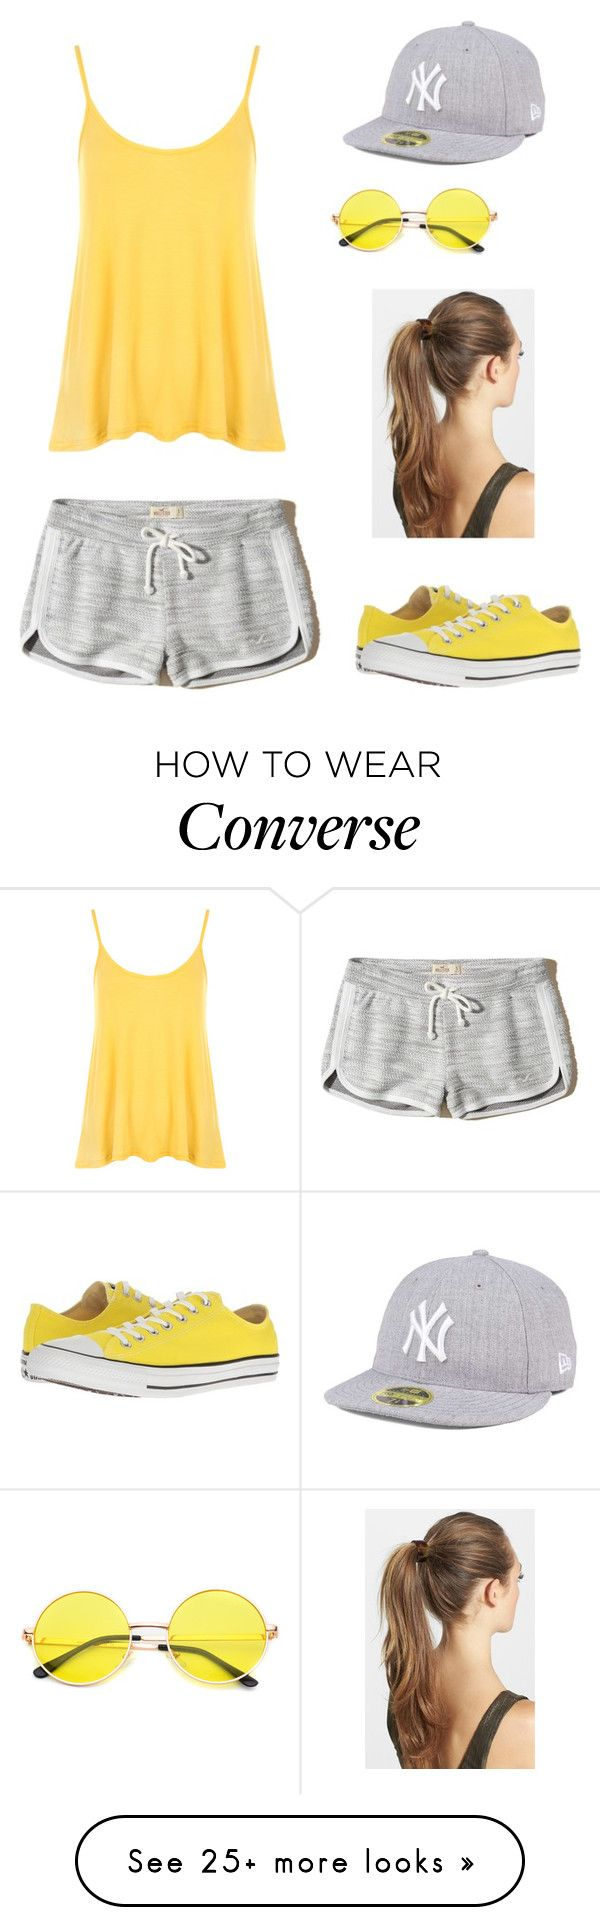 """""""Untitled #339"""" by ladyasdis on Polyvore featuring Hollister Co., WearAll, France Luxe, Converse, New Era, casual, shorts and workout"""